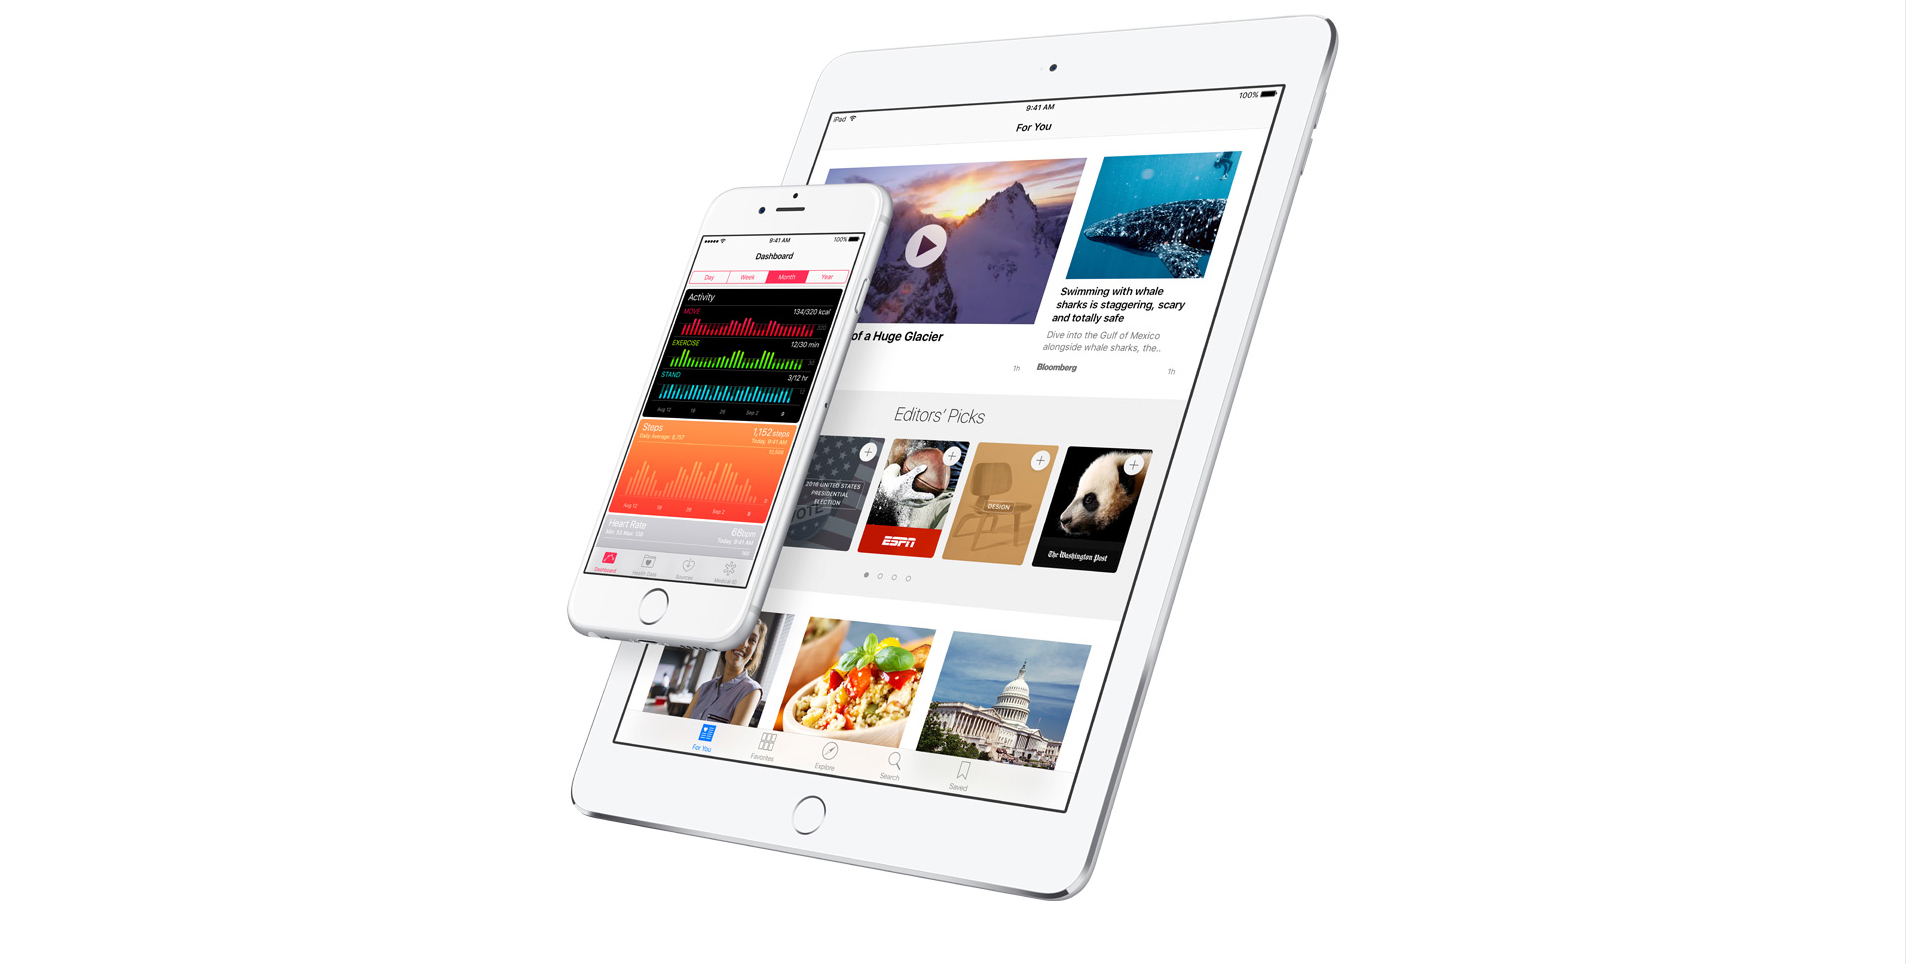 Apple seeds iOS 9.3 beta 2 to registered developers